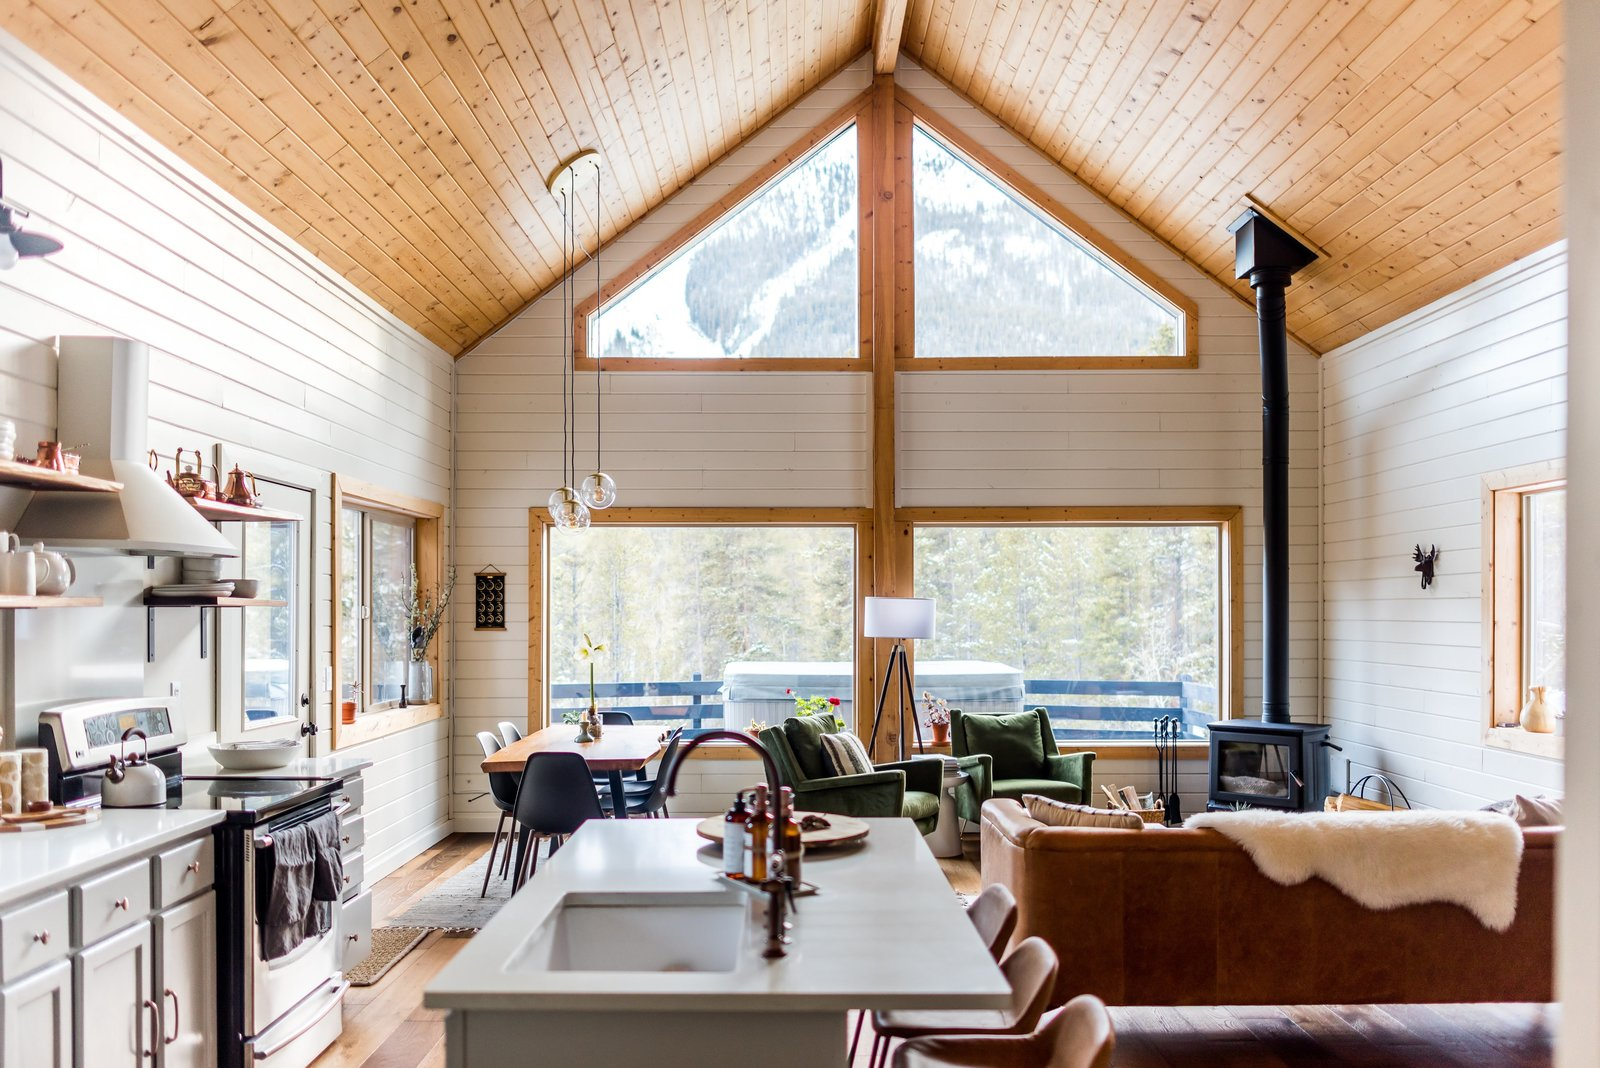 The expansive windows offer unparalleled views of La Plata peak while also providing lots of natural light to the living room and kitchen.